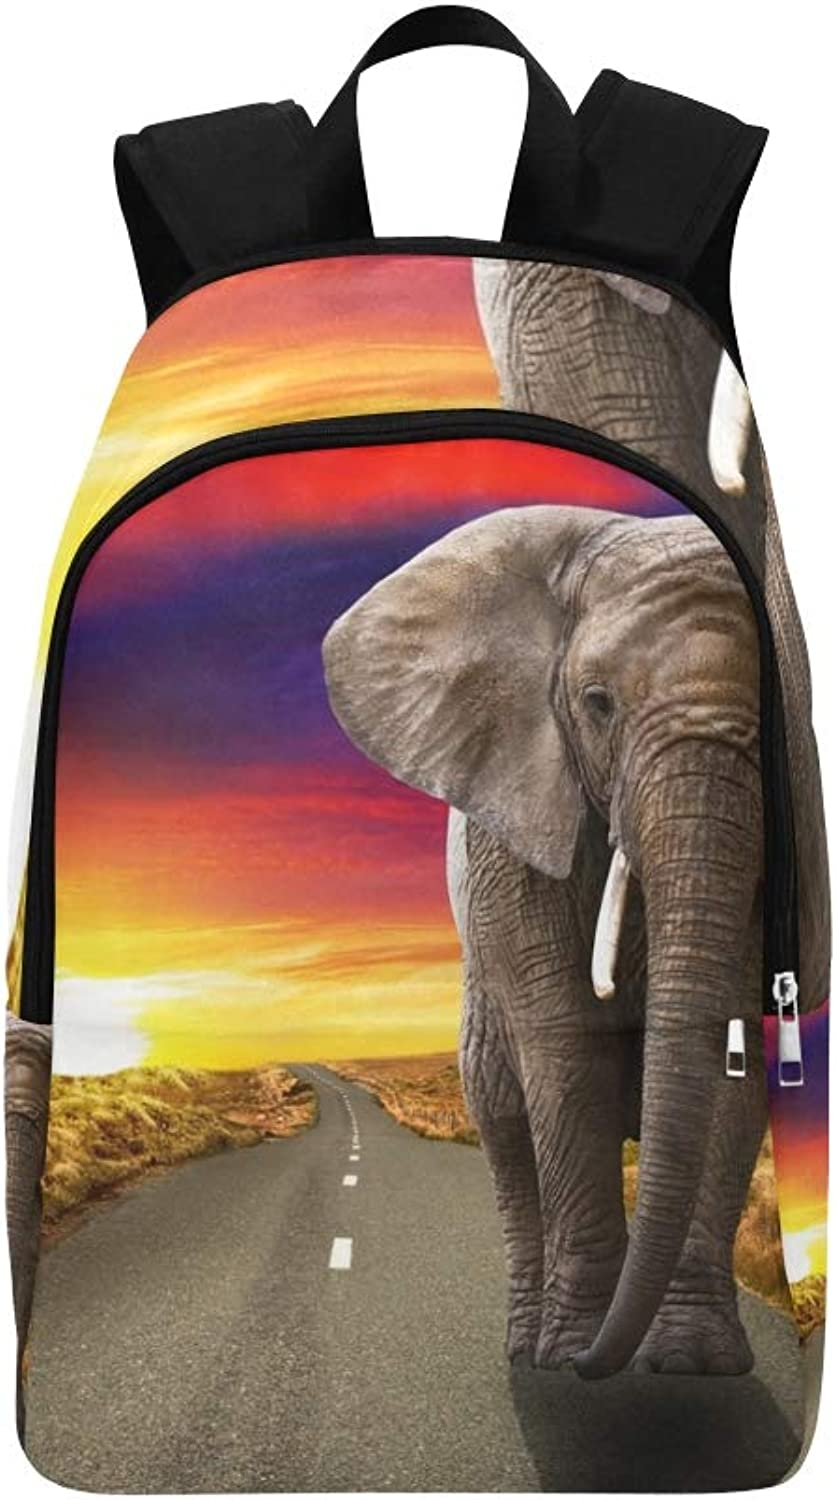 Elephant Walking On Road Sunset Casual Daypack Travel Bag College School Backpack for Mens and Women